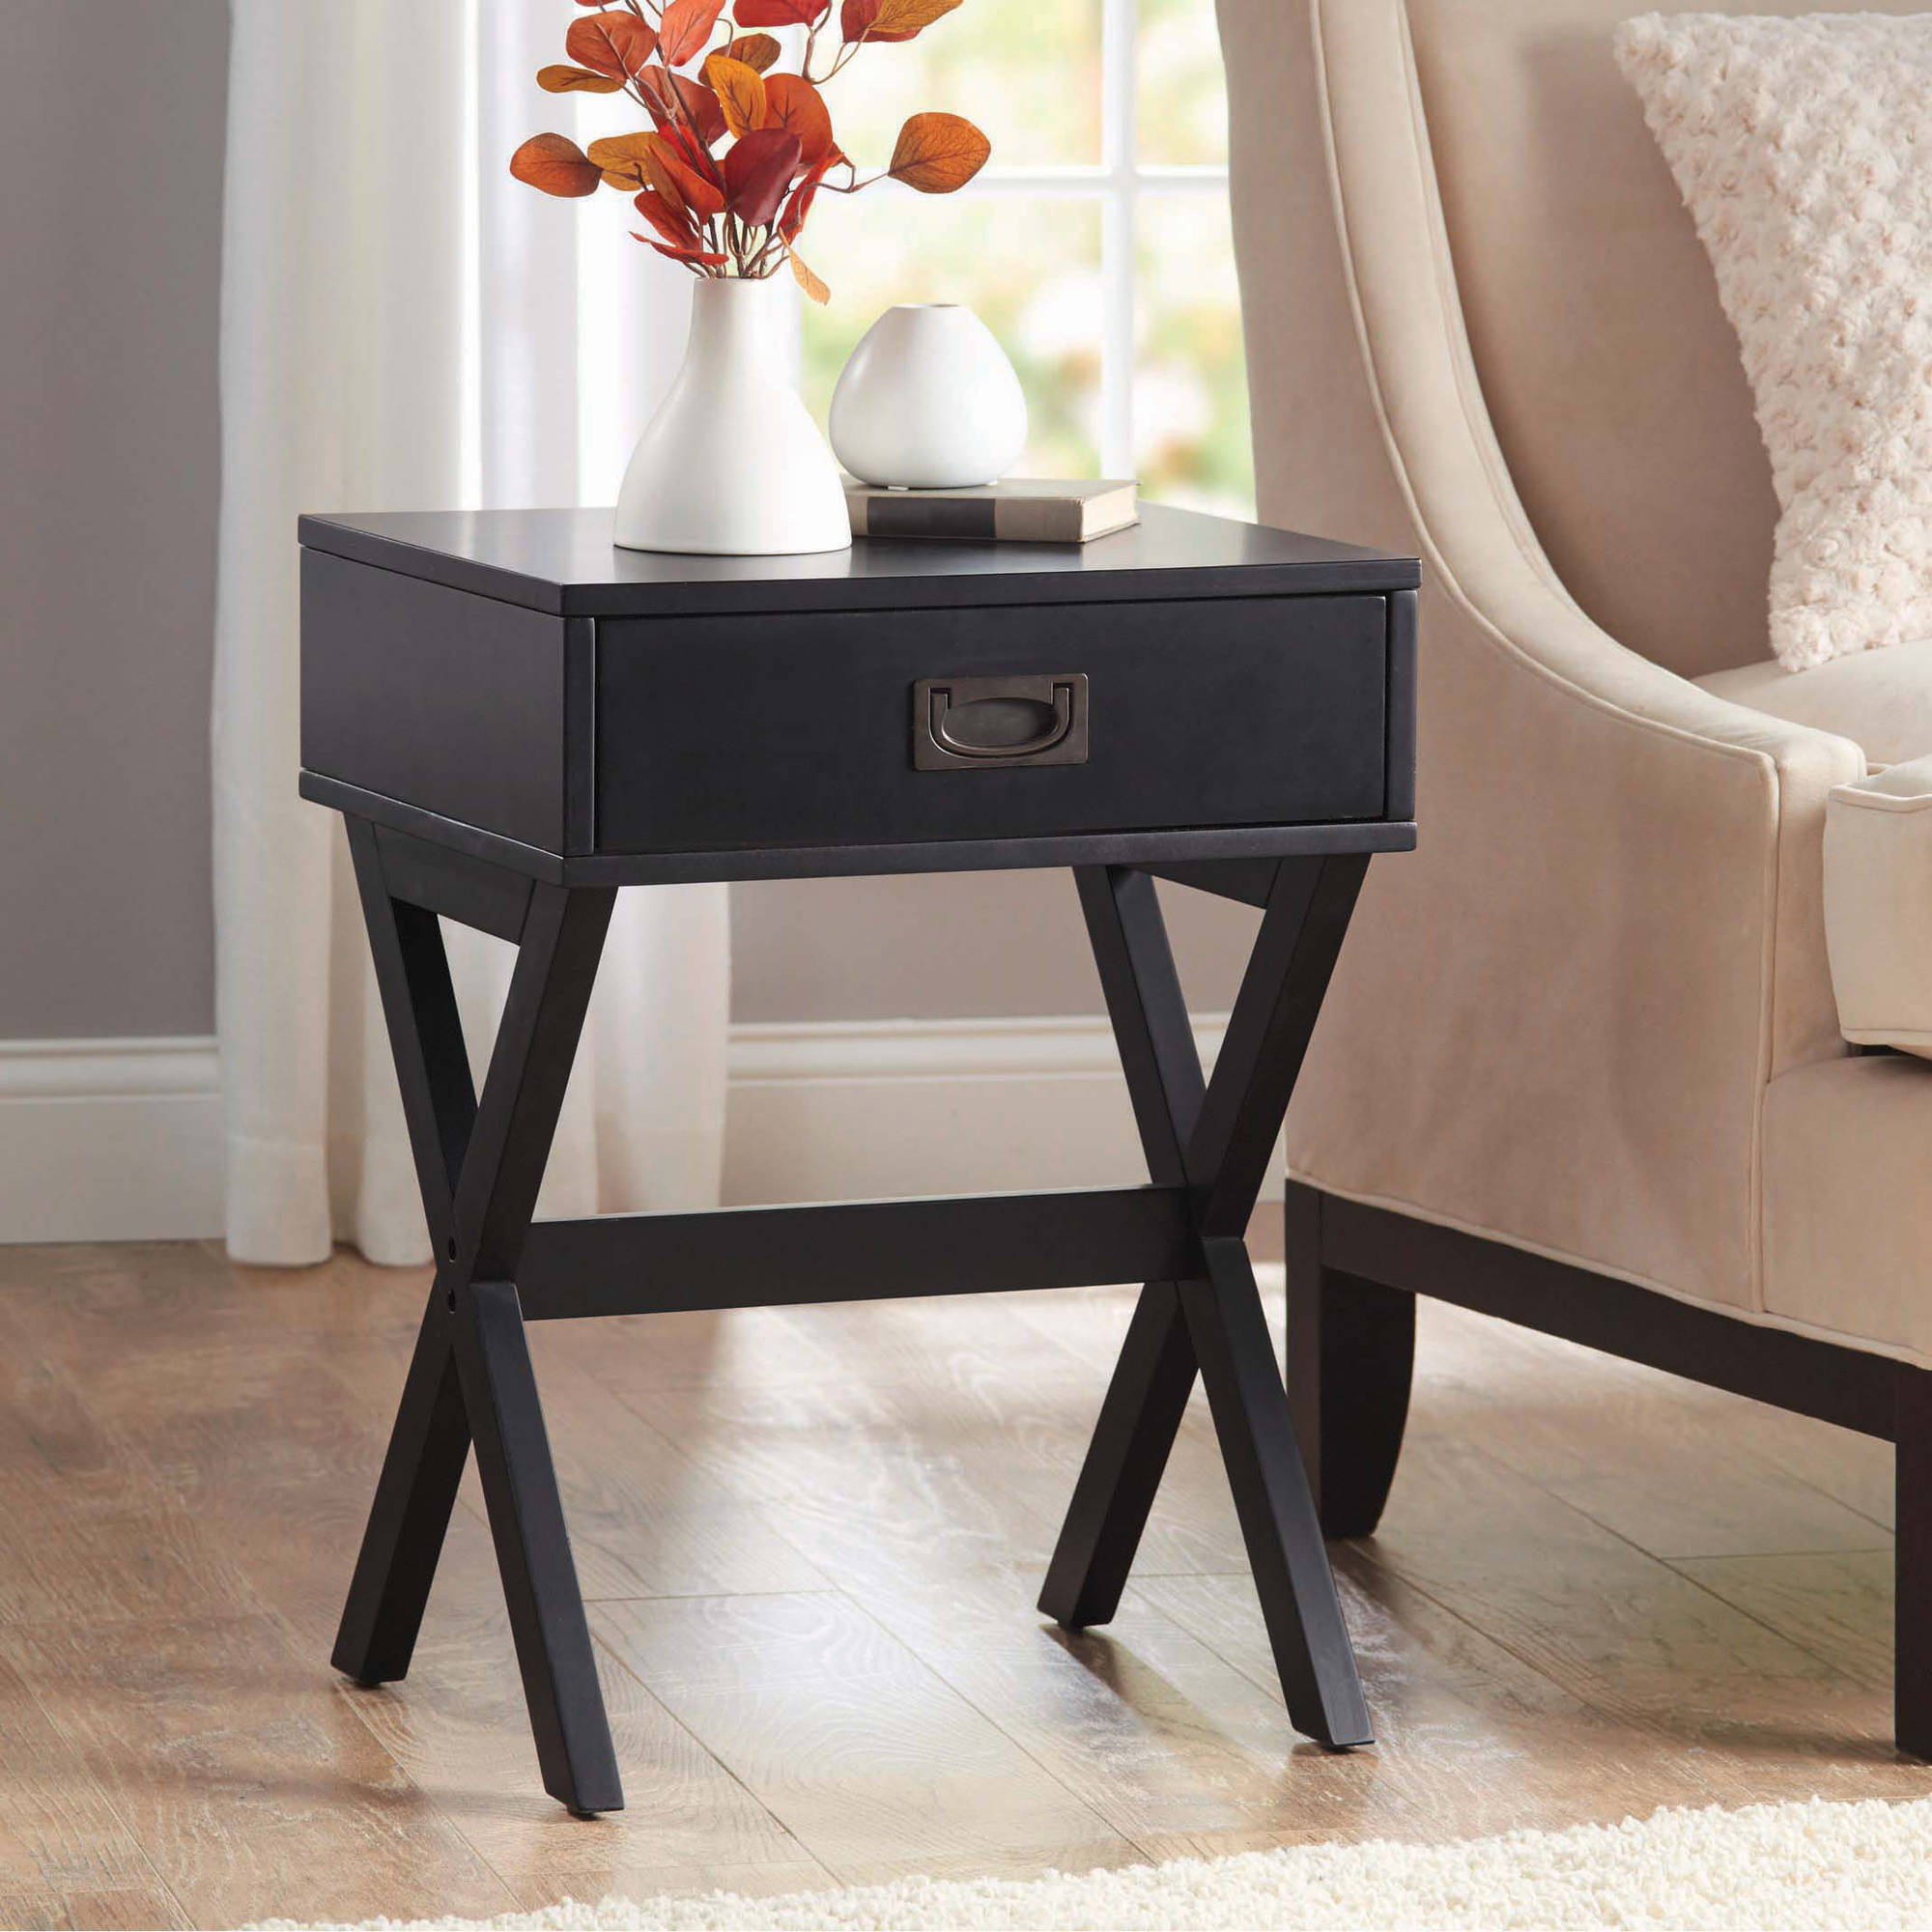 better homes gardens leg accent table with drawer multiple end tables drawers colors small trestle legs patio side storage ashley furniture entryway countertop and chairs black